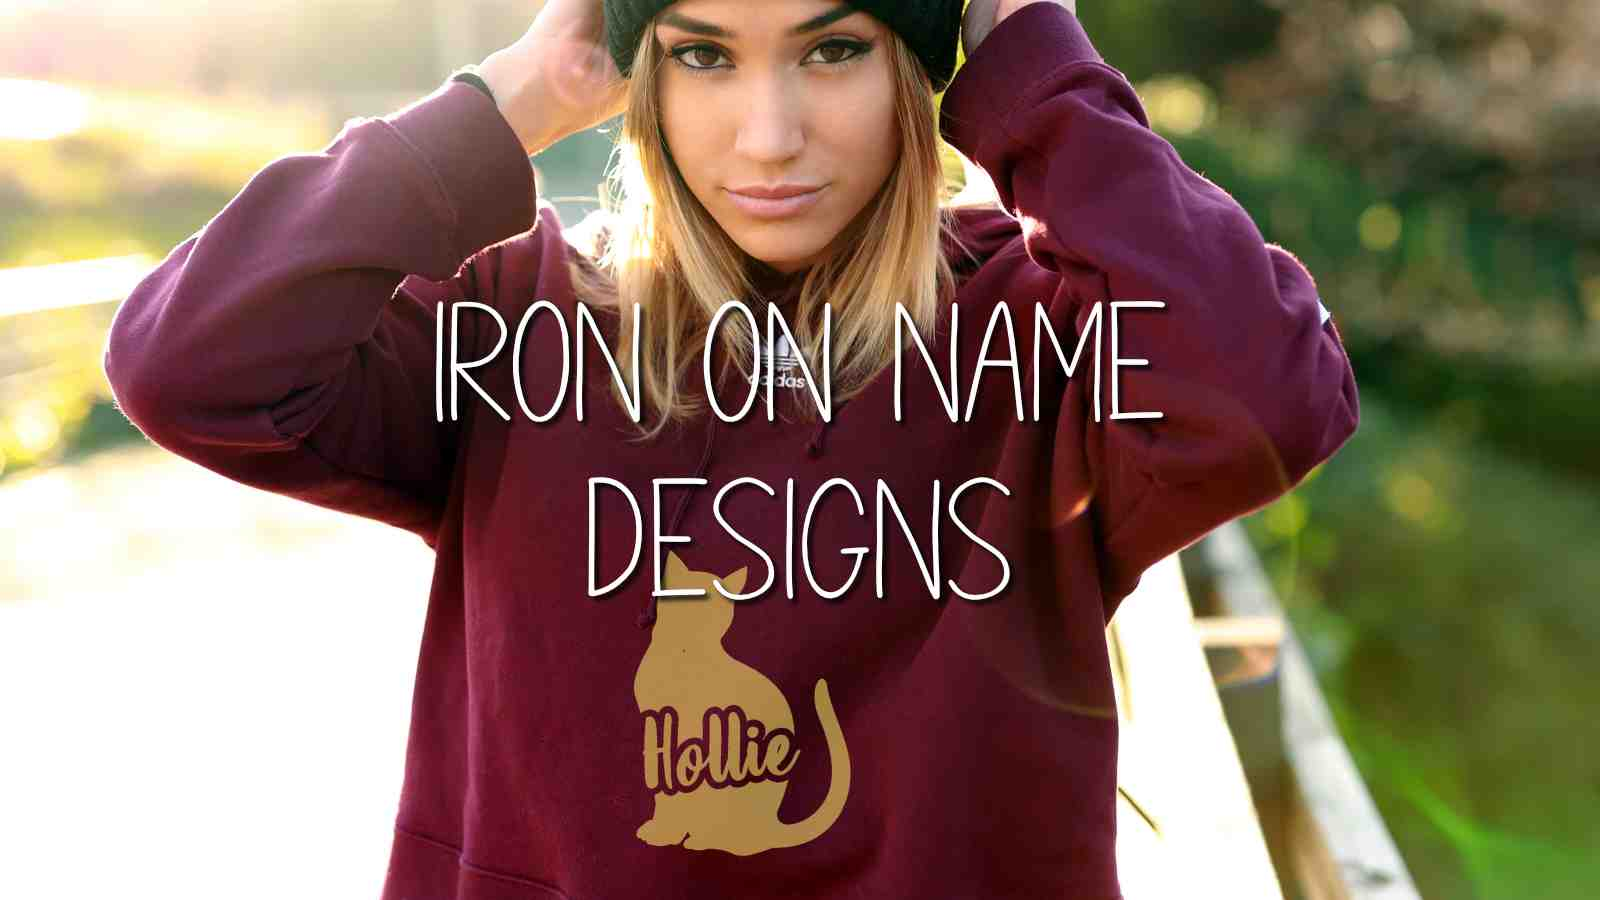 Iron on Name Designs - Ready to Personalise and Iron On